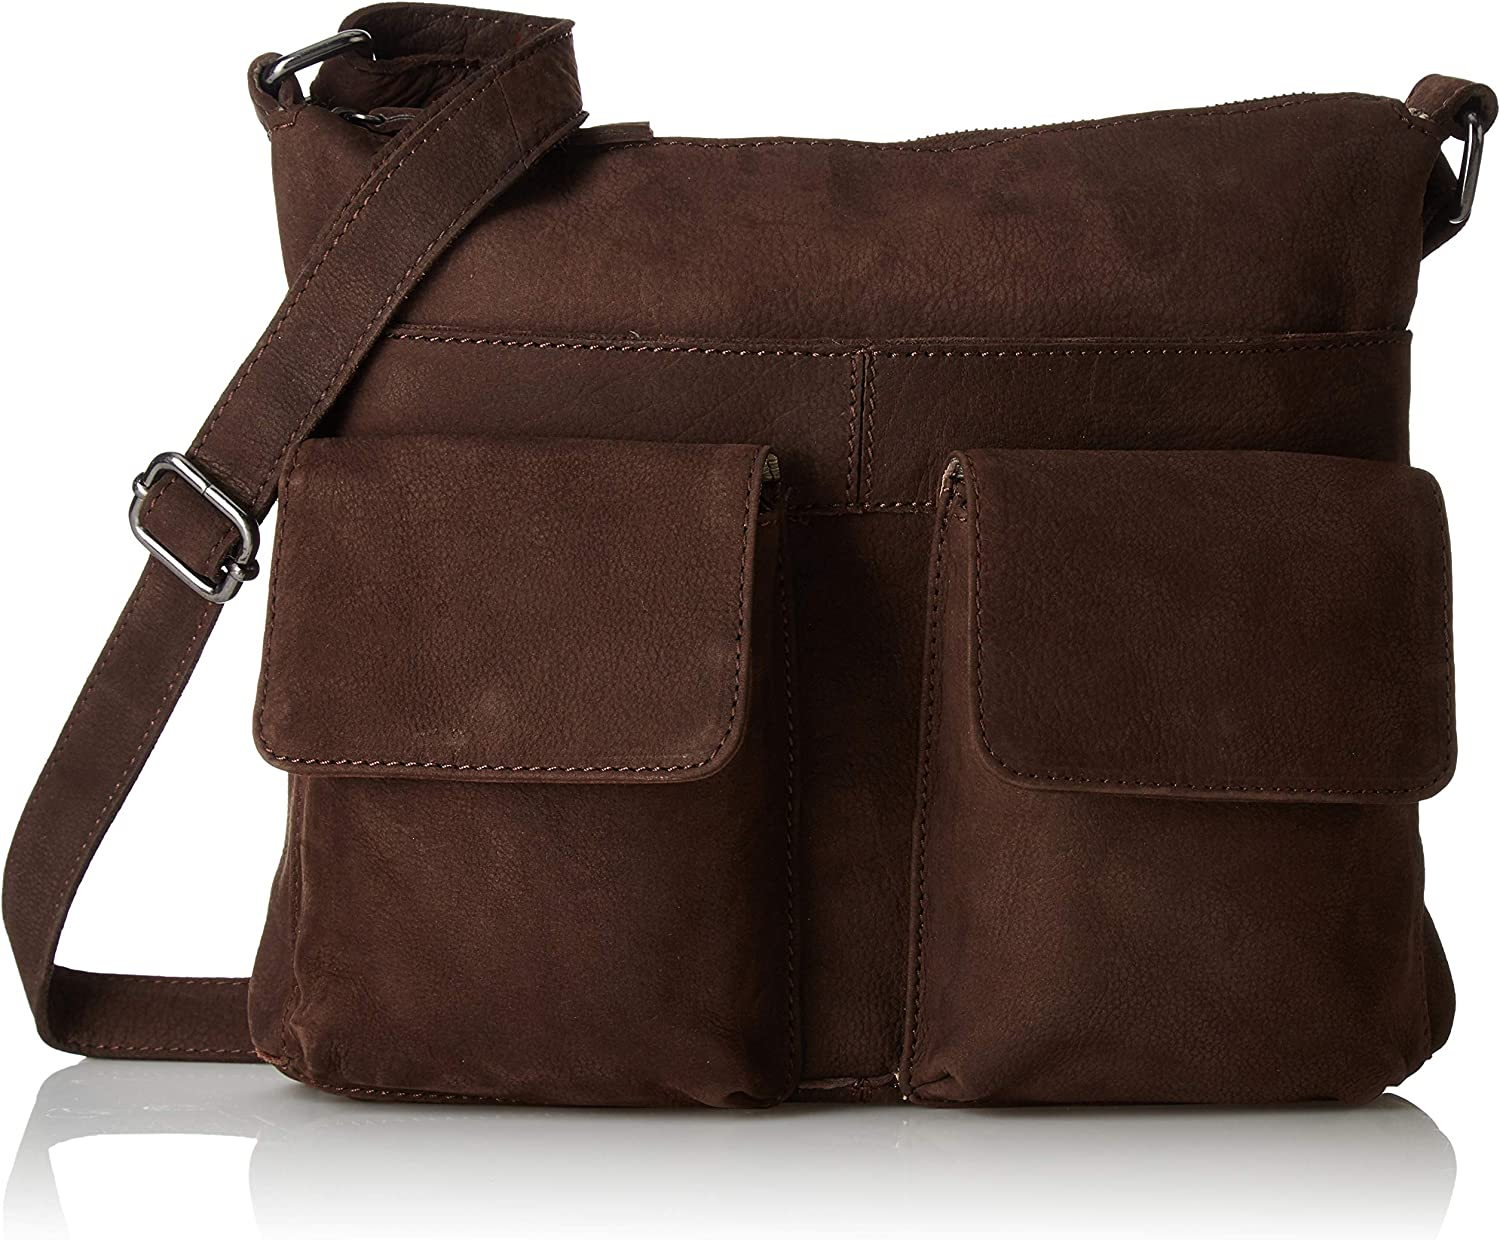 Tresori Women's Real Leather Cross over Bag with Front Pockets One Size Brown